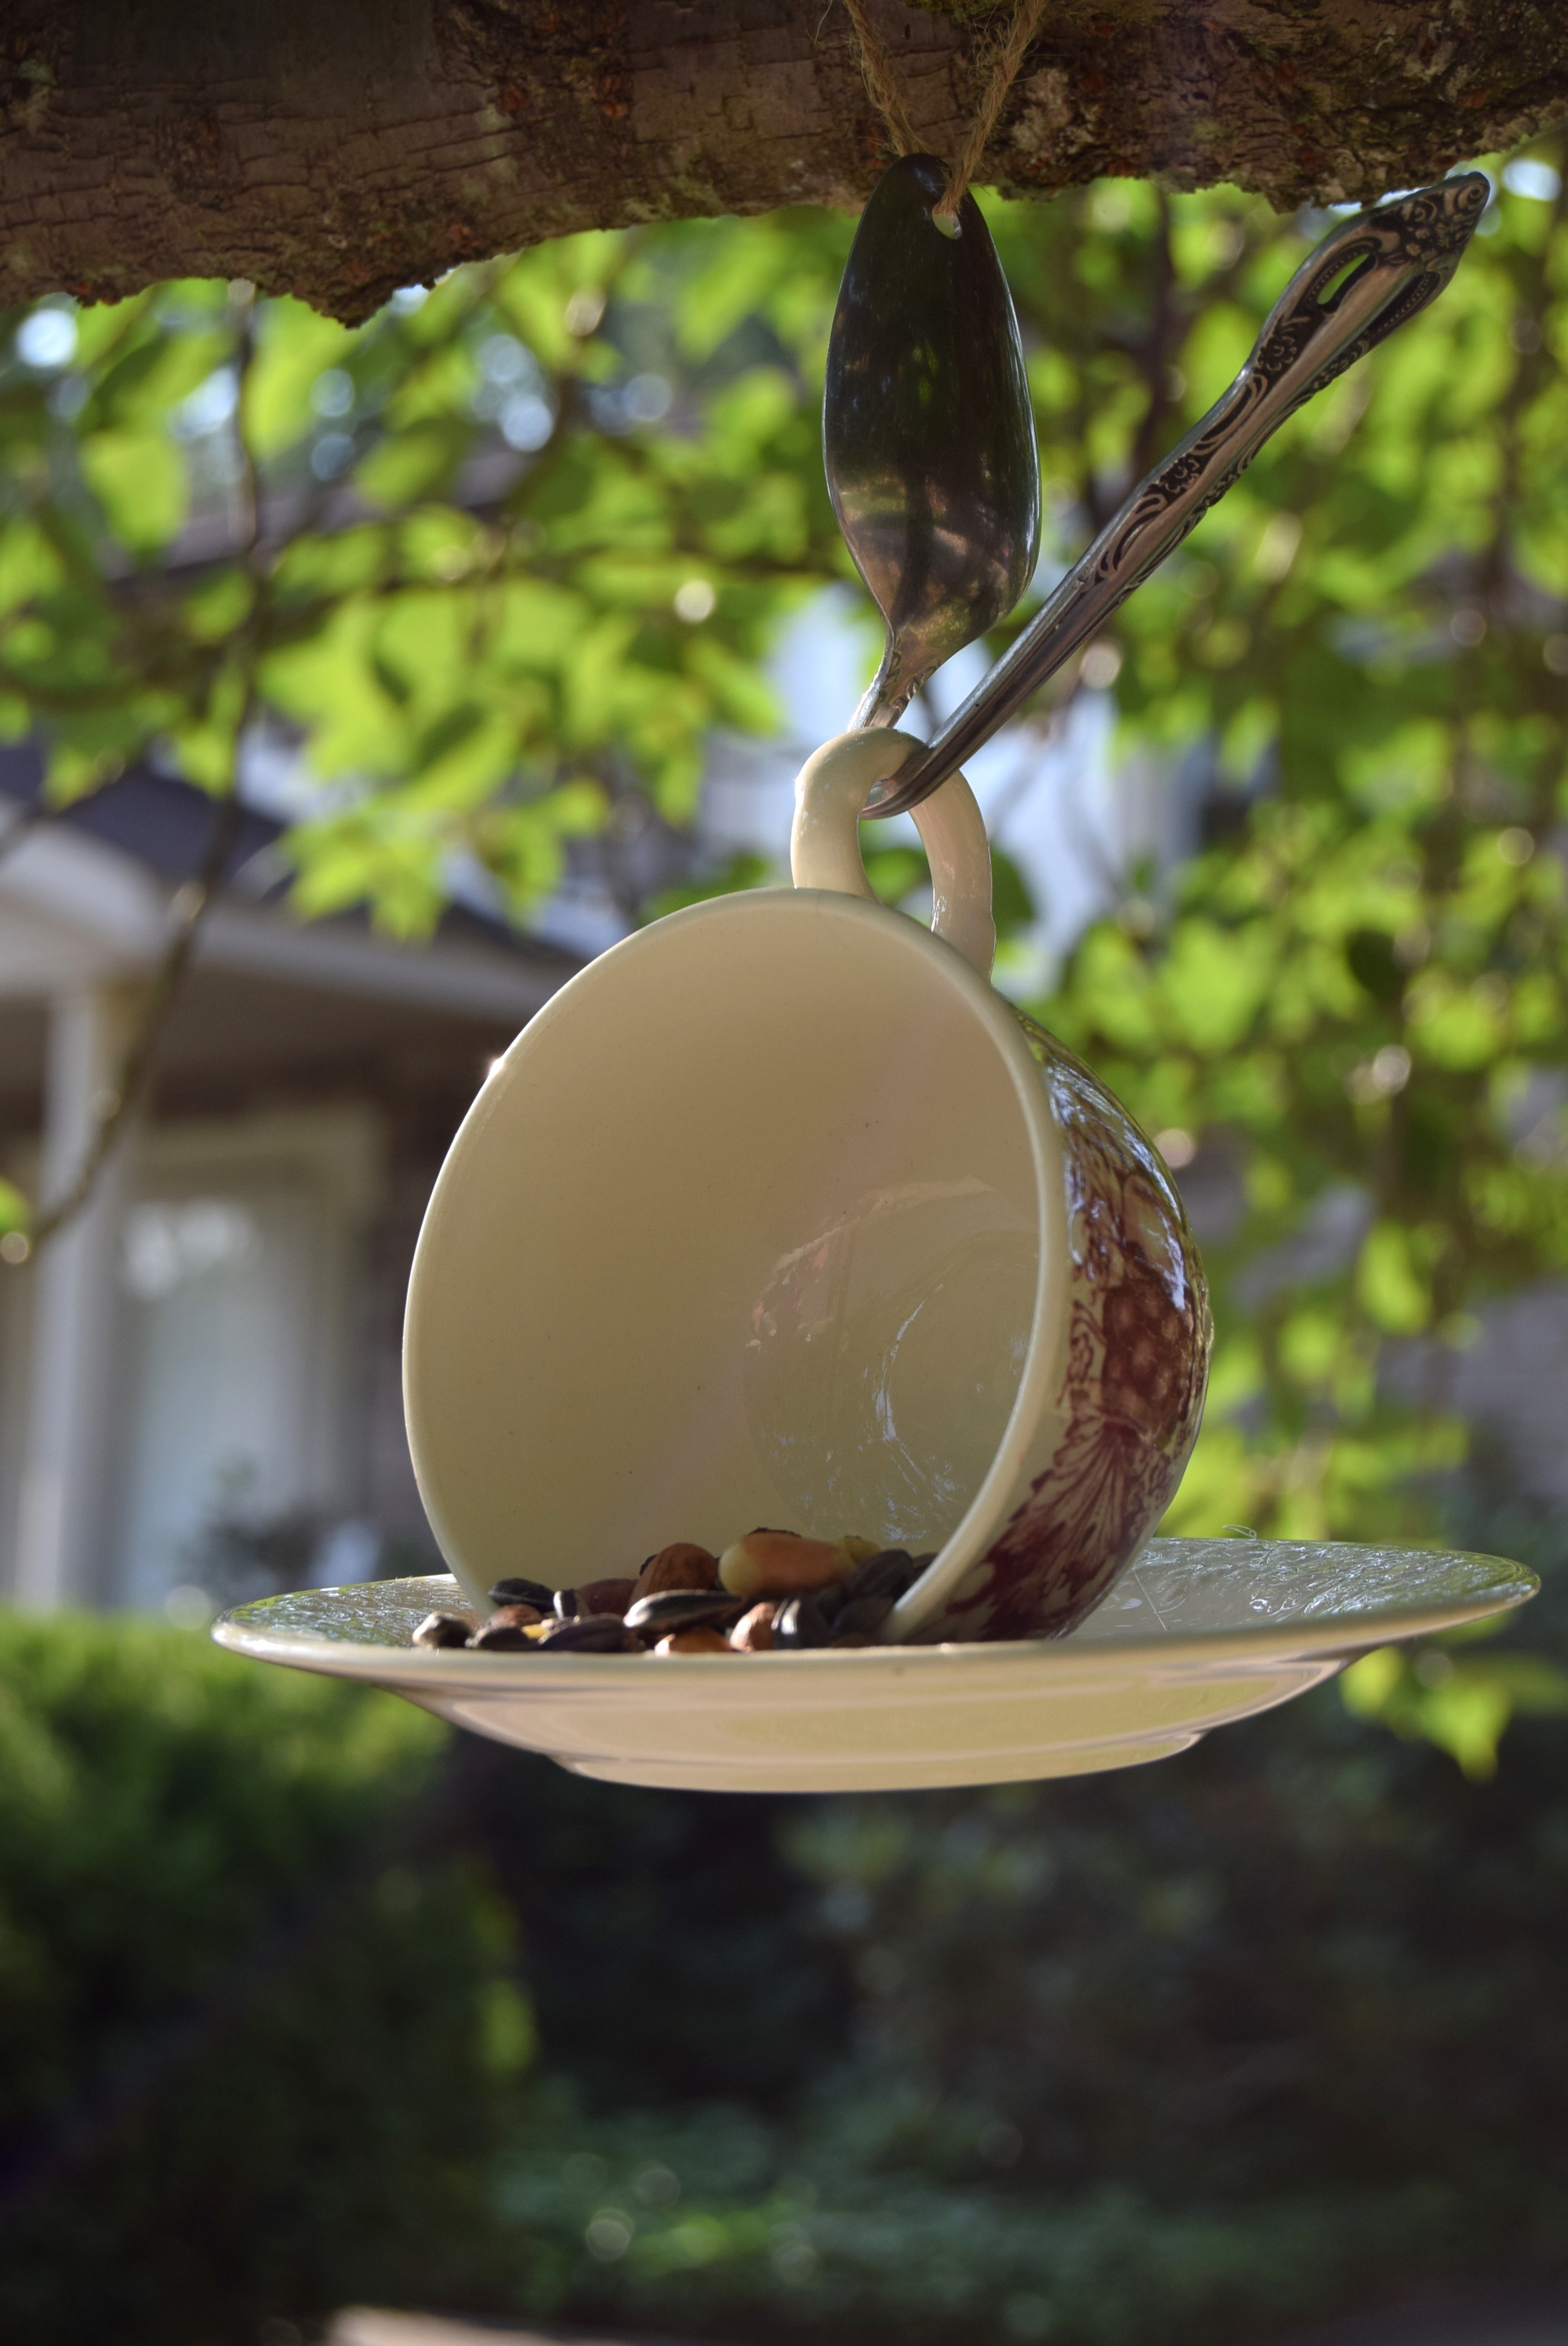 Courtney's hanging bird feeder made from a tea cup and saucer